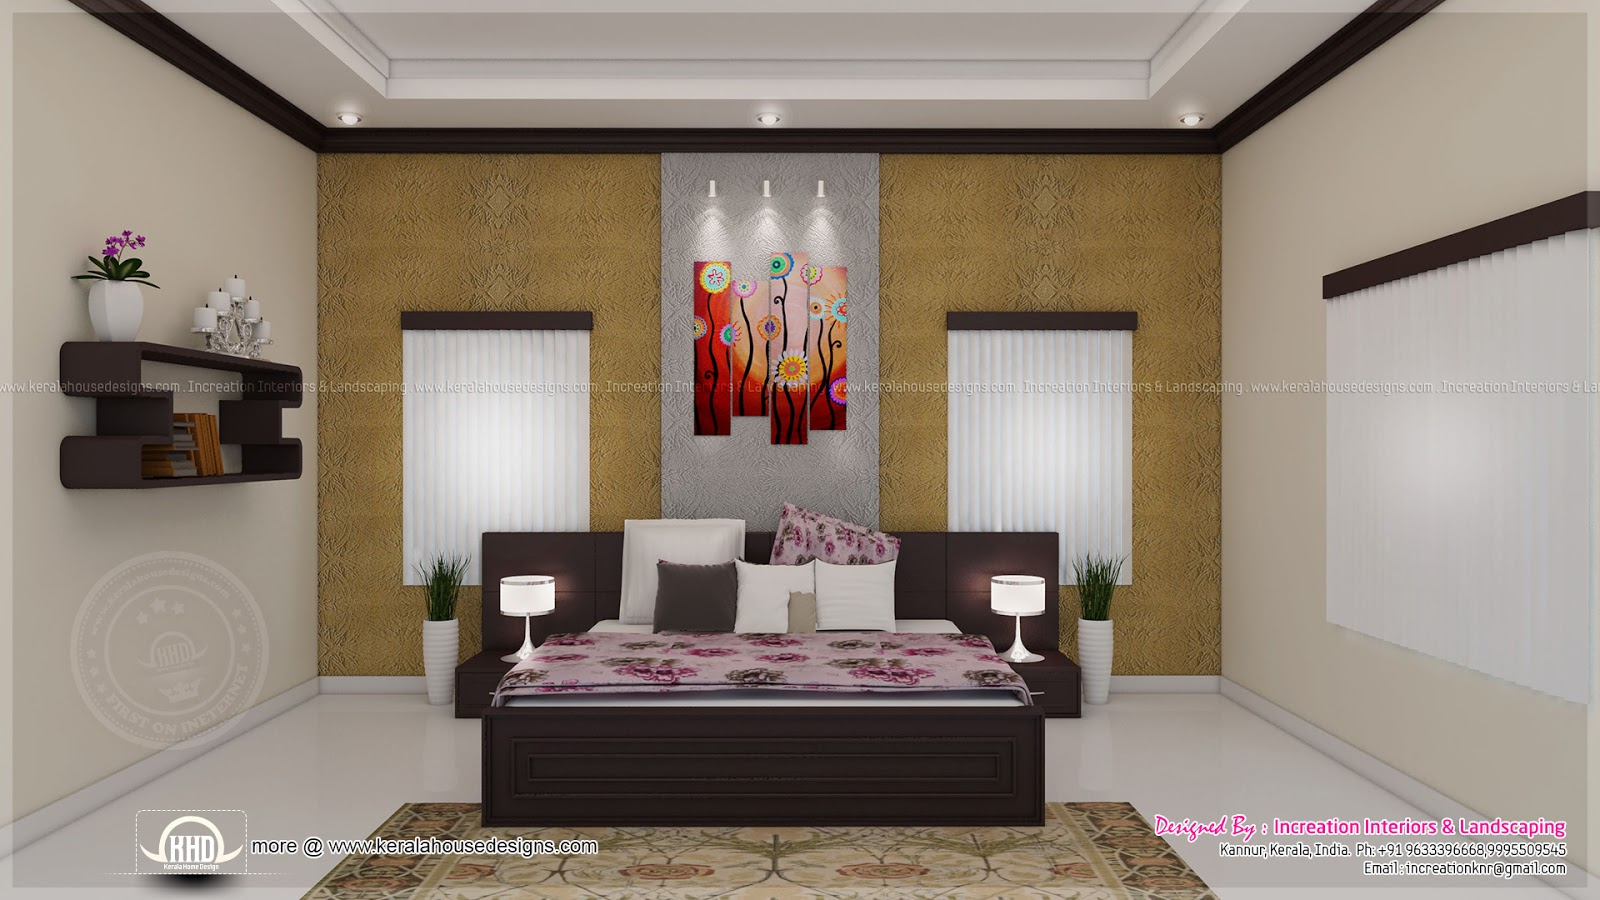 house interior ideas in 3d rendering kerala home design and floor plans